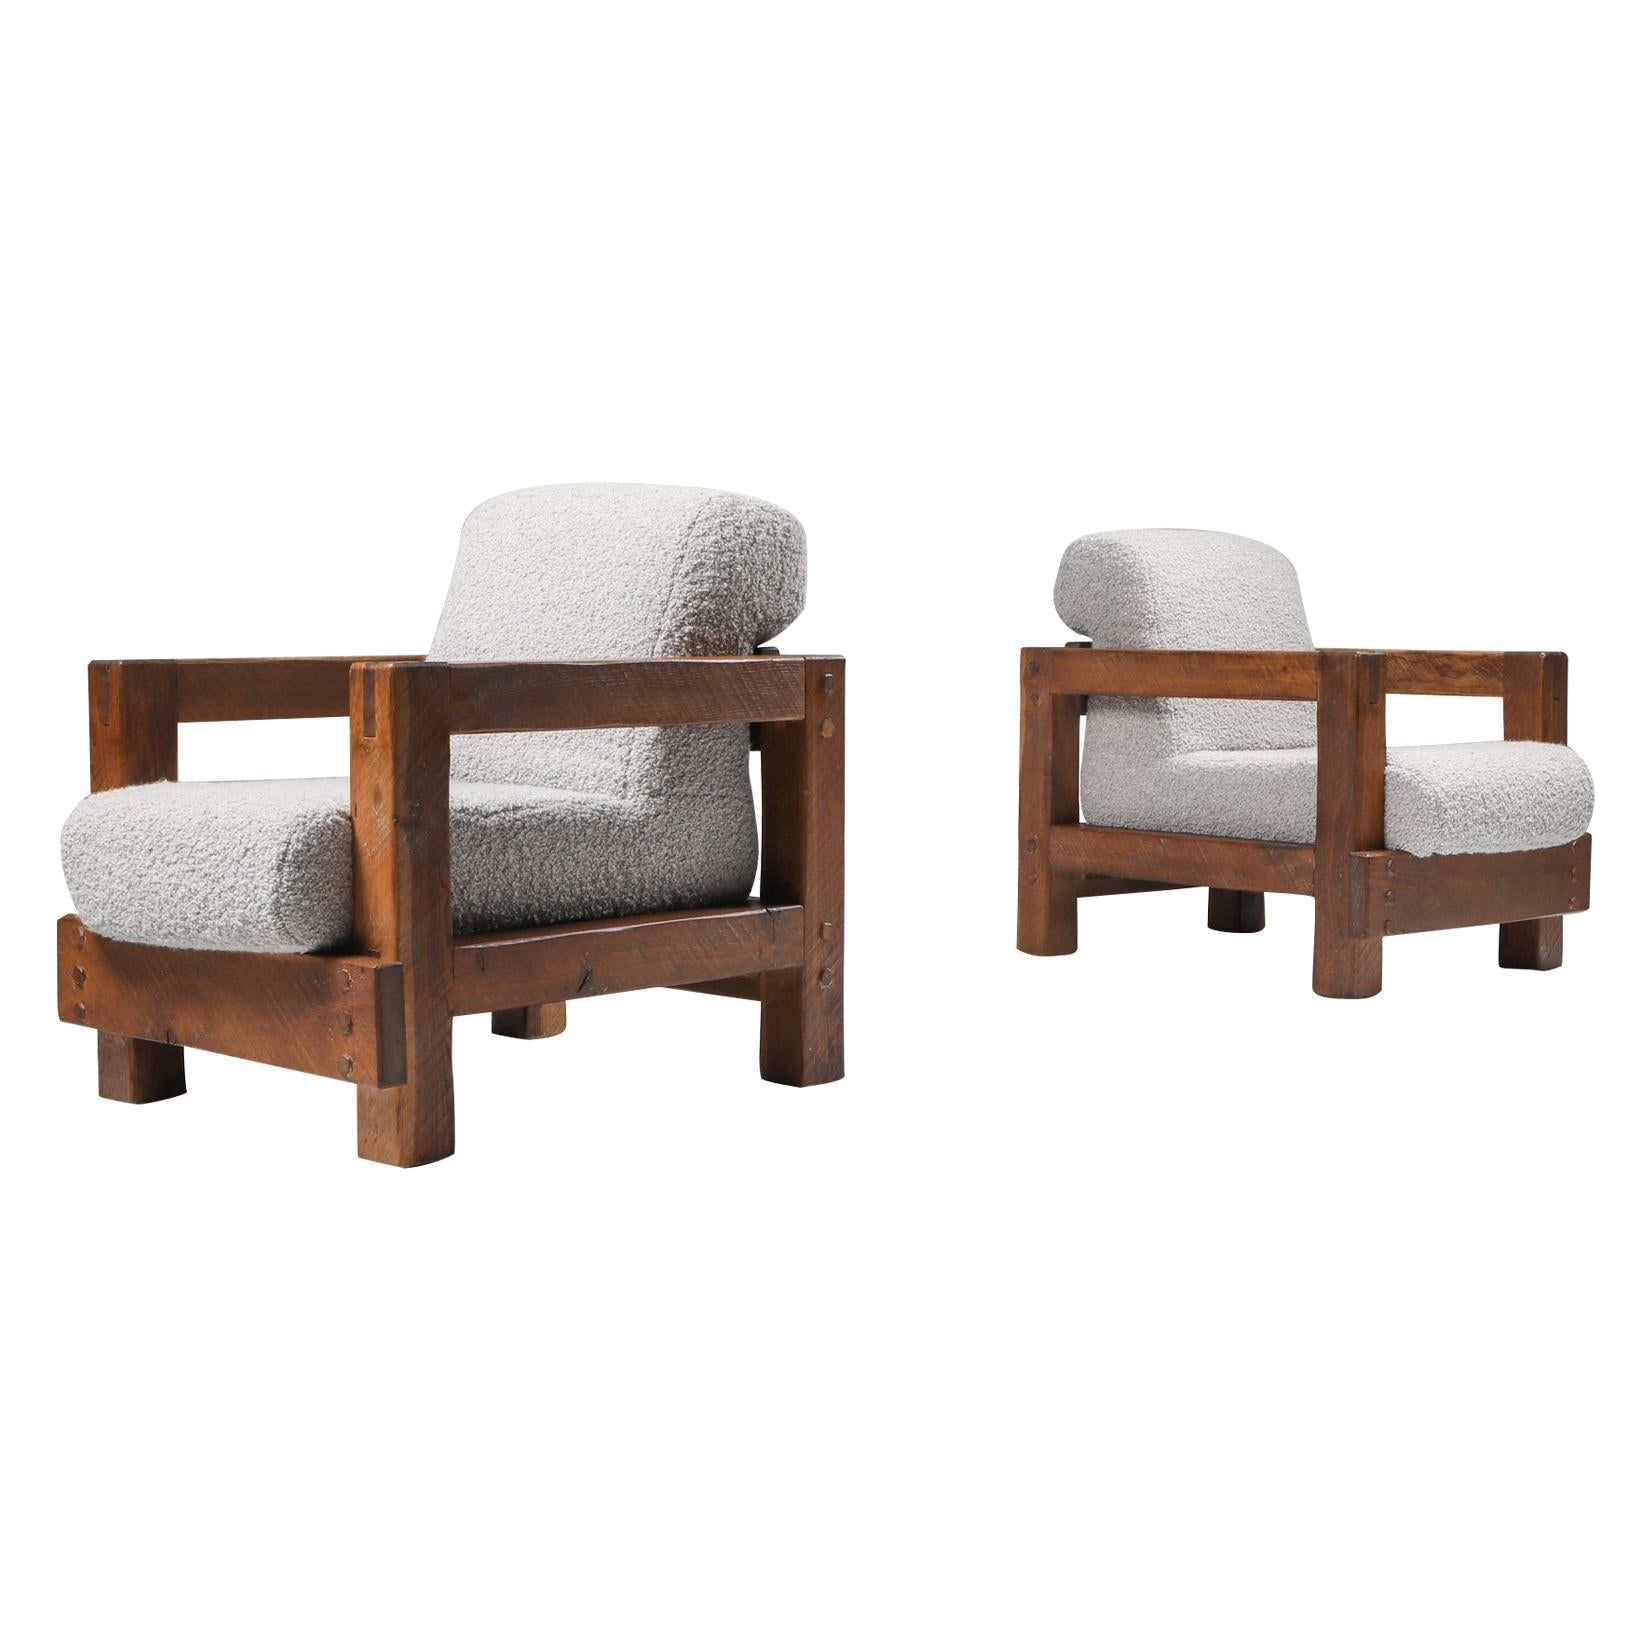 Rustic Modern Primitive Lounge Chairs in Bouclé